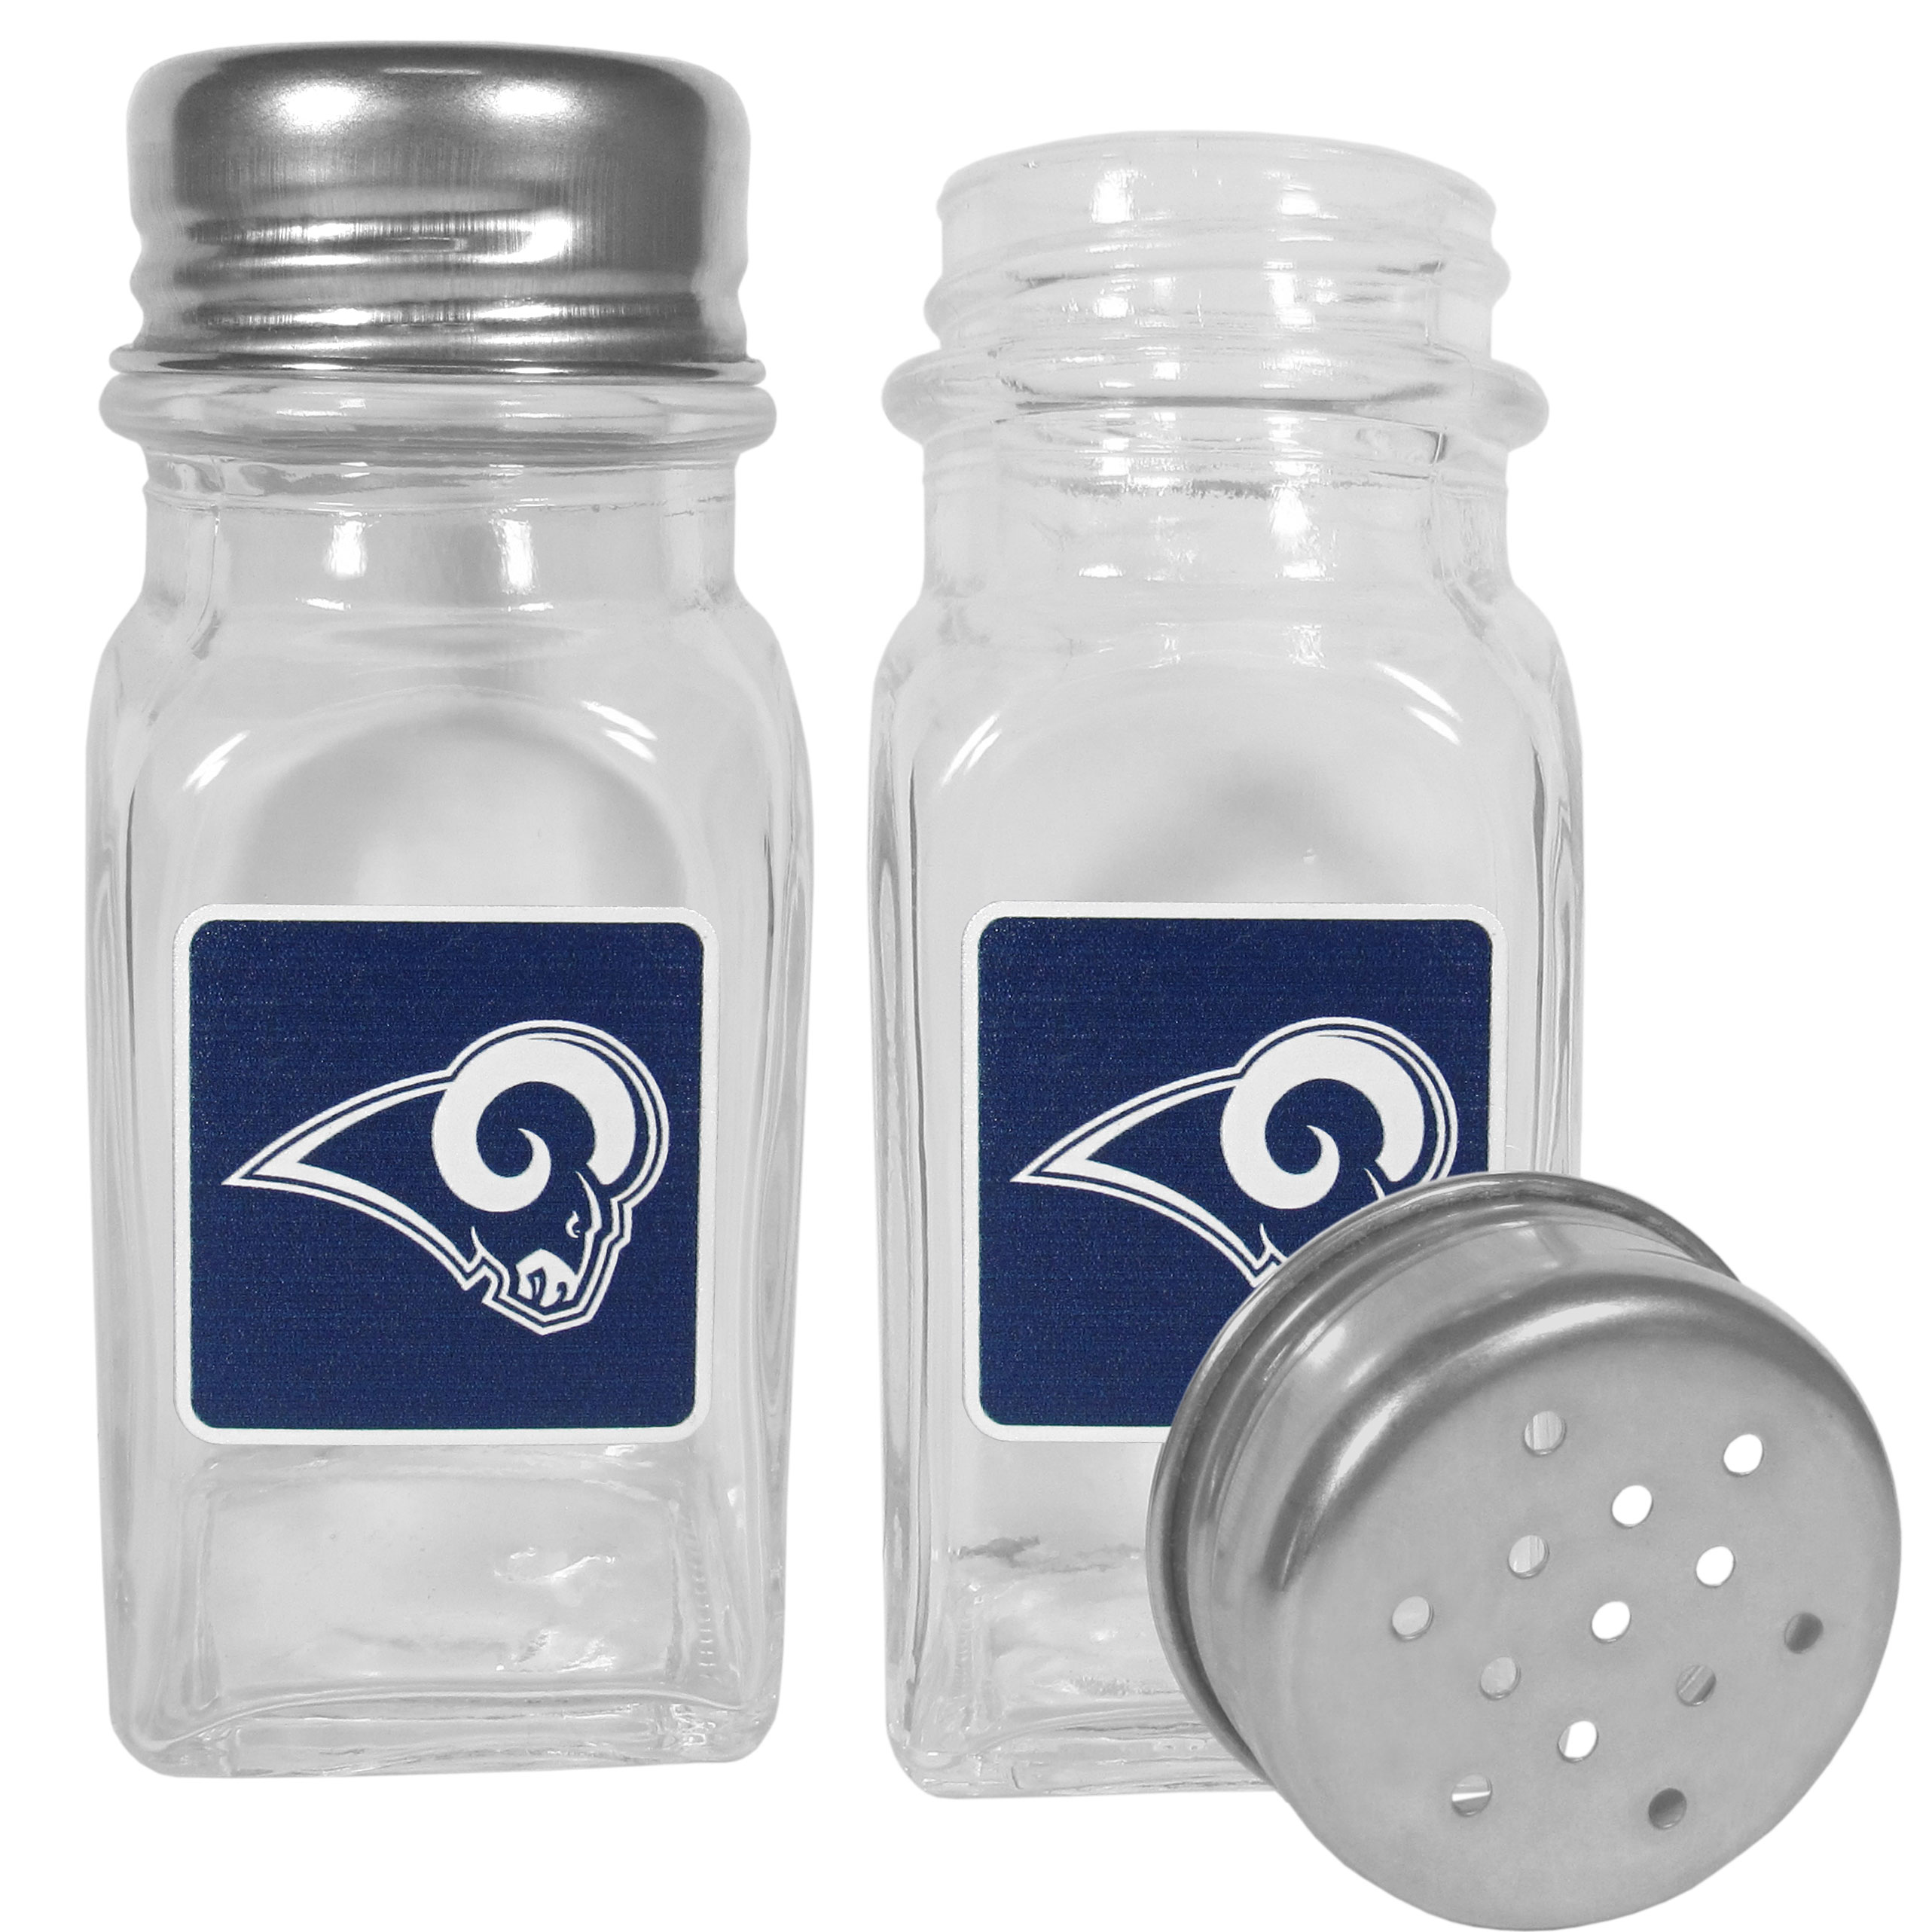 Los Angeles Rams Graphics Salt and Pepper Shaker - No tailgate party is complete without your Los Angeles Rams salt & pepper shakers featuring bright team logos. The diner replica salt and pepper shakers are glass with screw top lids. These team shakers are a great grill accessory whether you are barbecuing on the patio, picnicing or having a game day party.